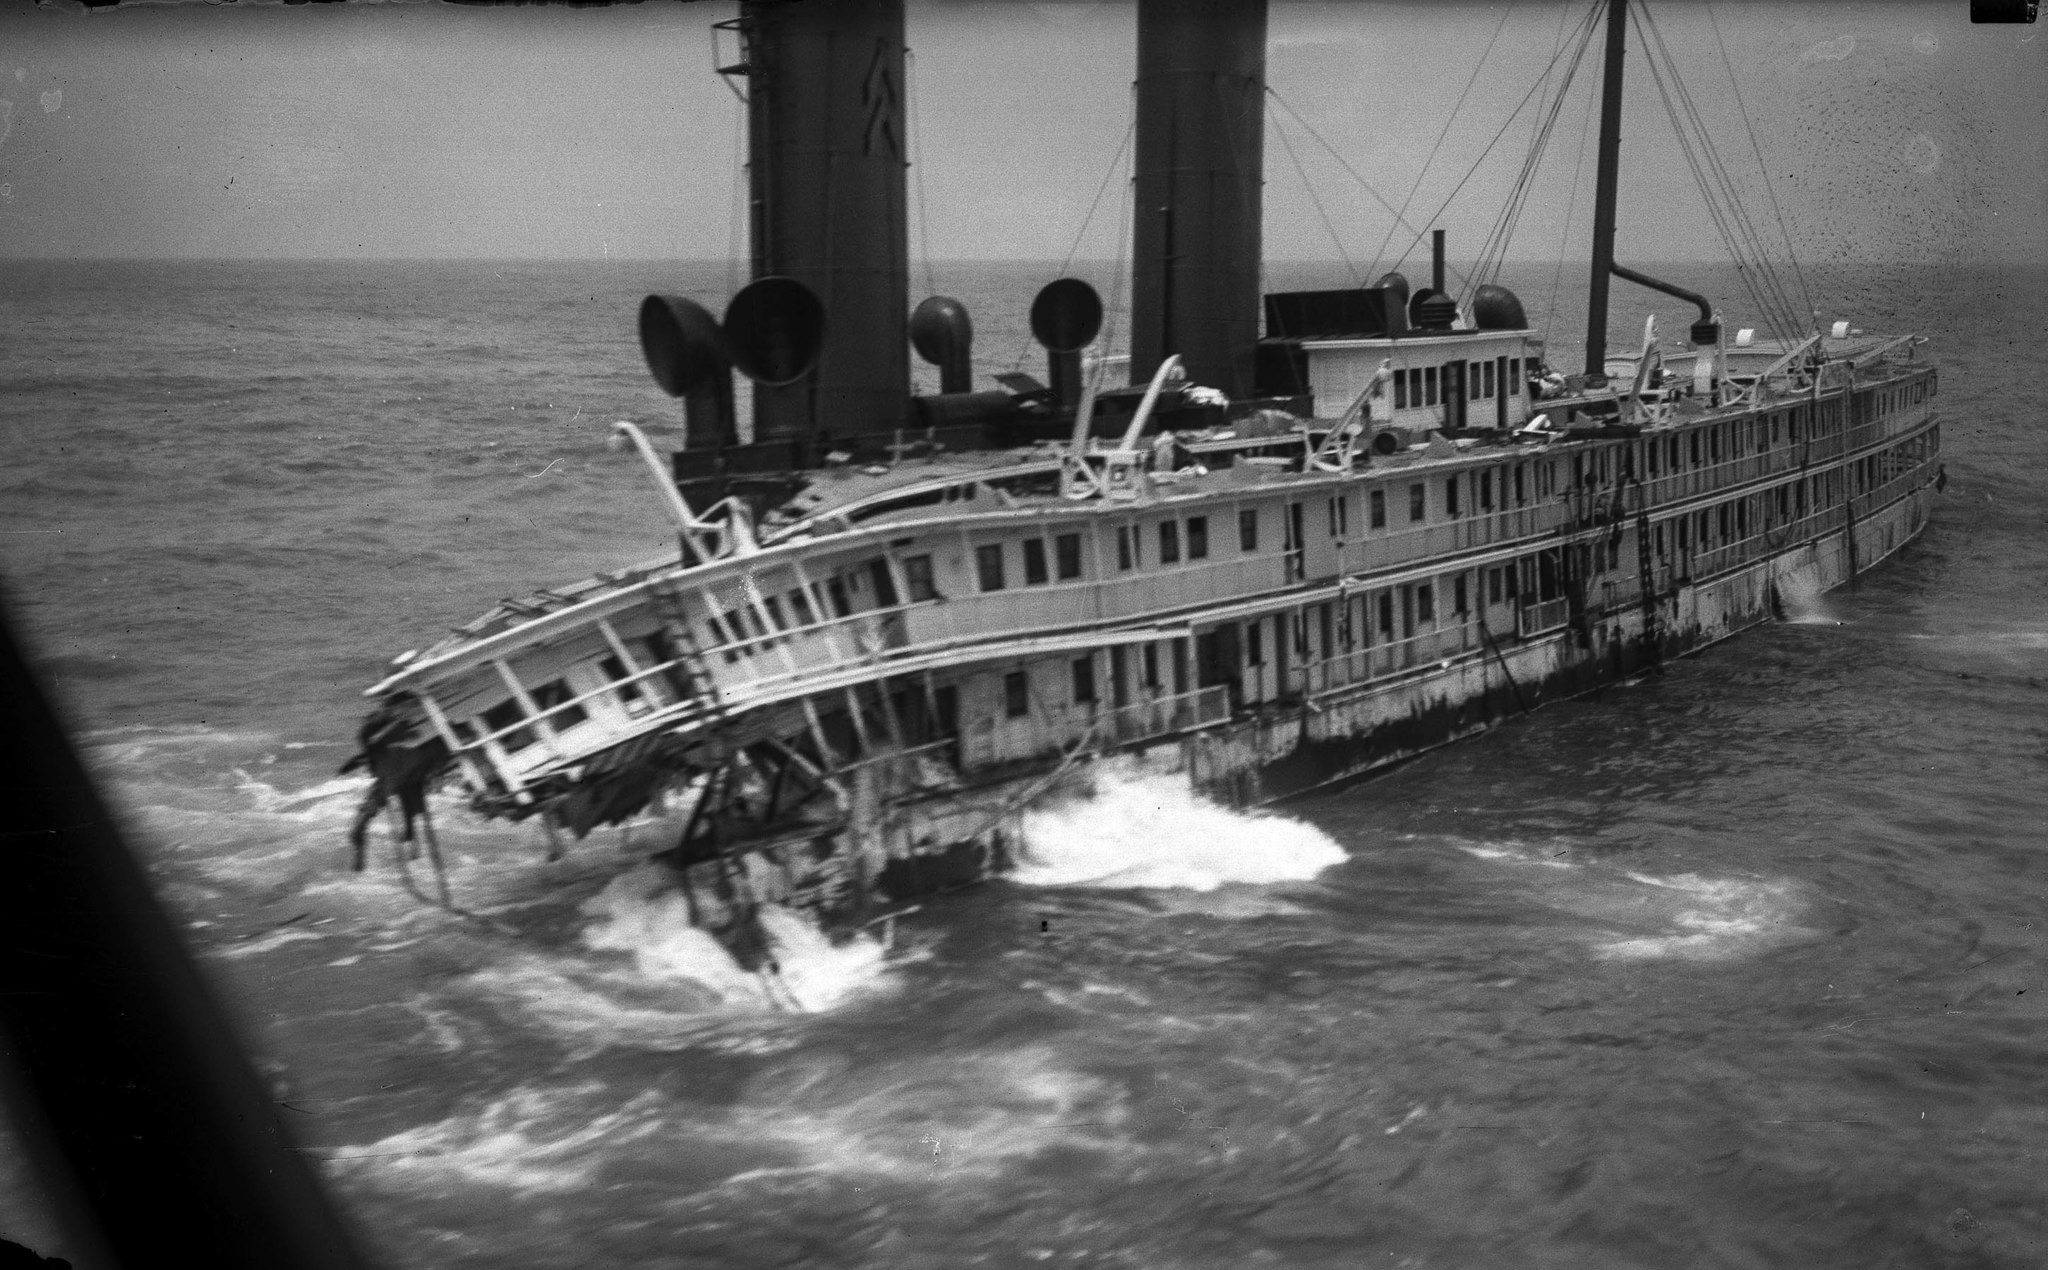 June 12, 1931: Wreck of S.S. Harvard is taken in aerial photo two weeks after the passenger ship ran